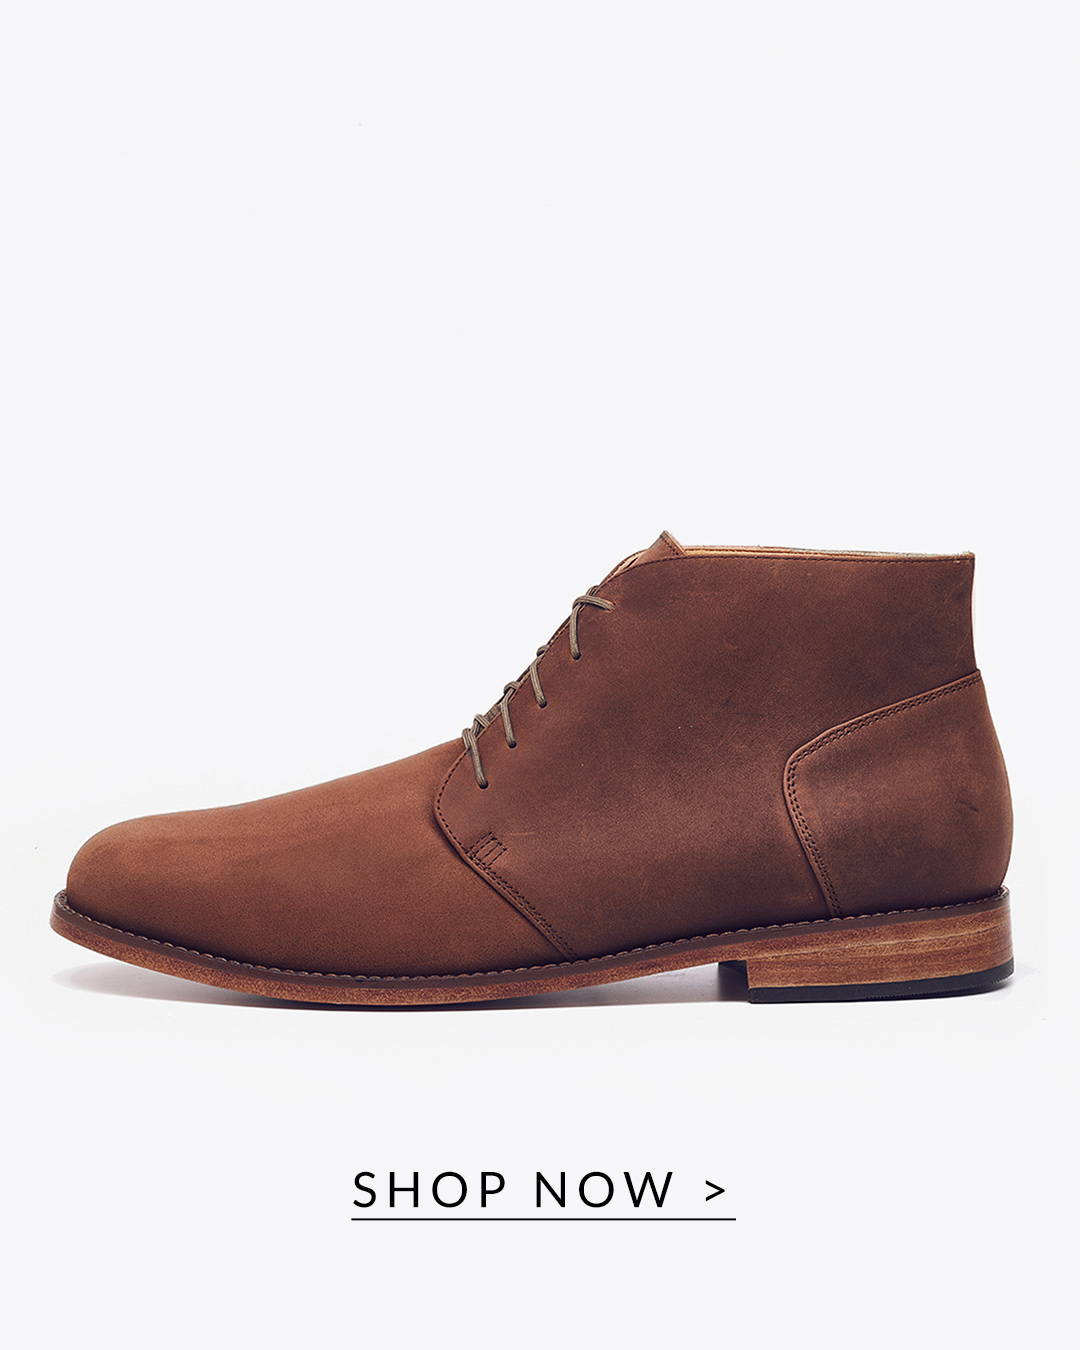 c4b76026c86 You Nisolo Suits Best Which Sole qfHFA